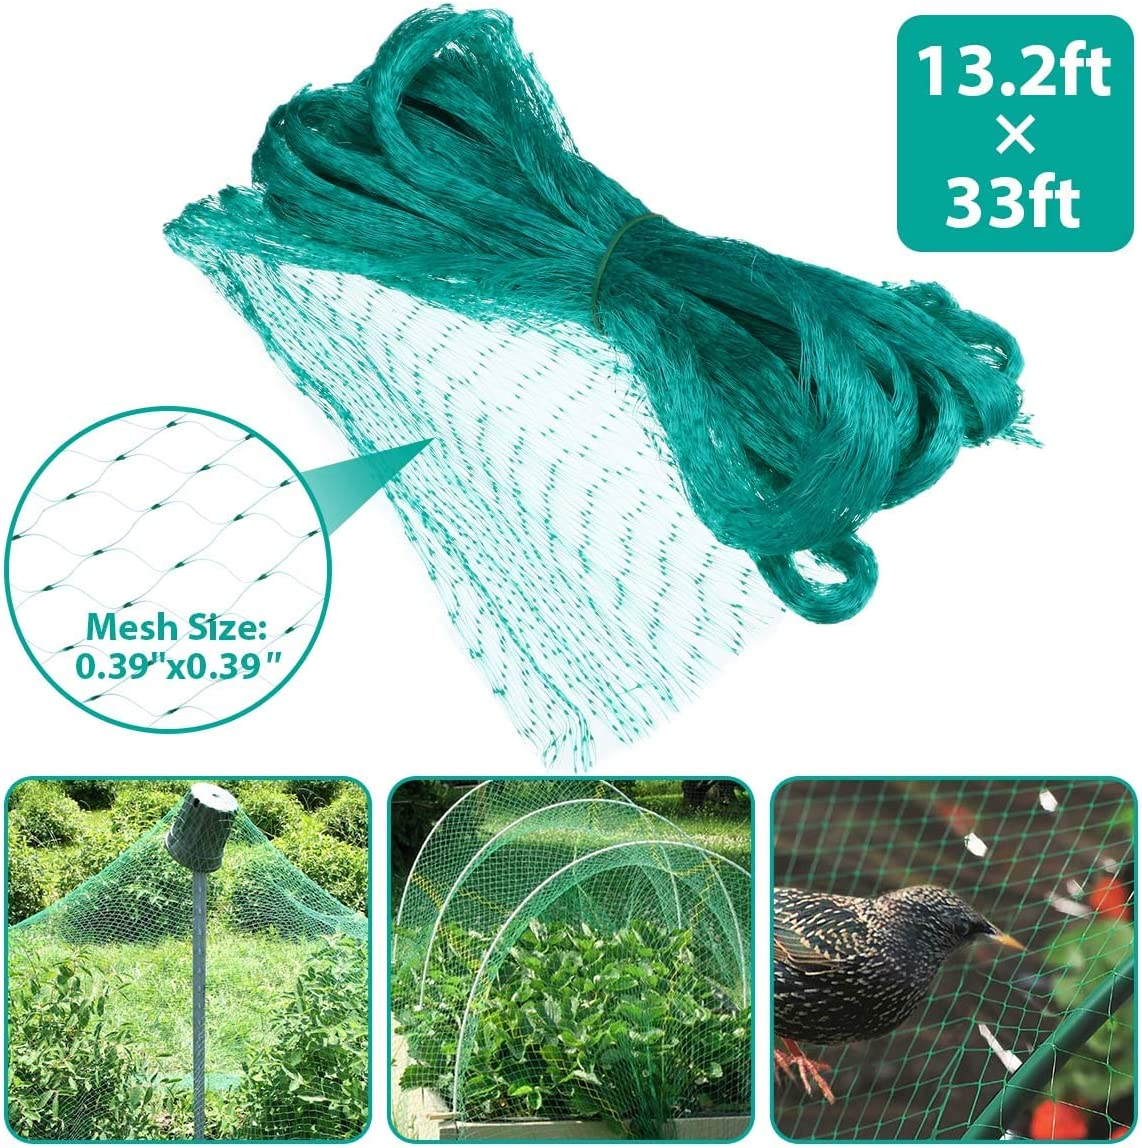 Tvird Green Anti-Bird Netting,Garden Plant Net,13.2Feet x 33Feet Fruit Trees Netting,Reusable, Washed Plant Protection Net to Protect Plants and Fruit Trees from Birds and Wildlife